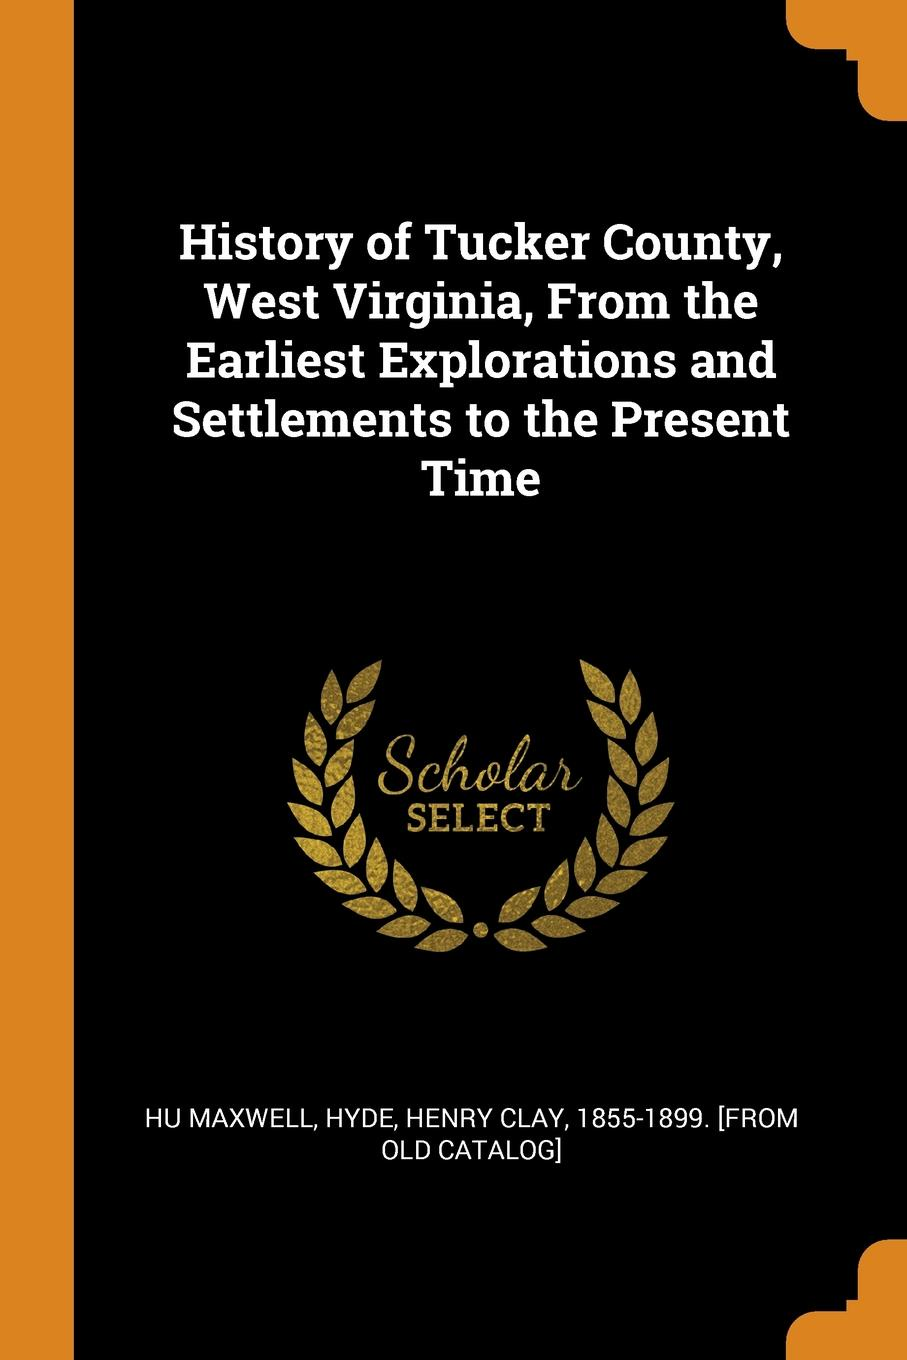 History of Tucker County, West Virginia, From the Earliest Explorations and Settlements to the Present Time